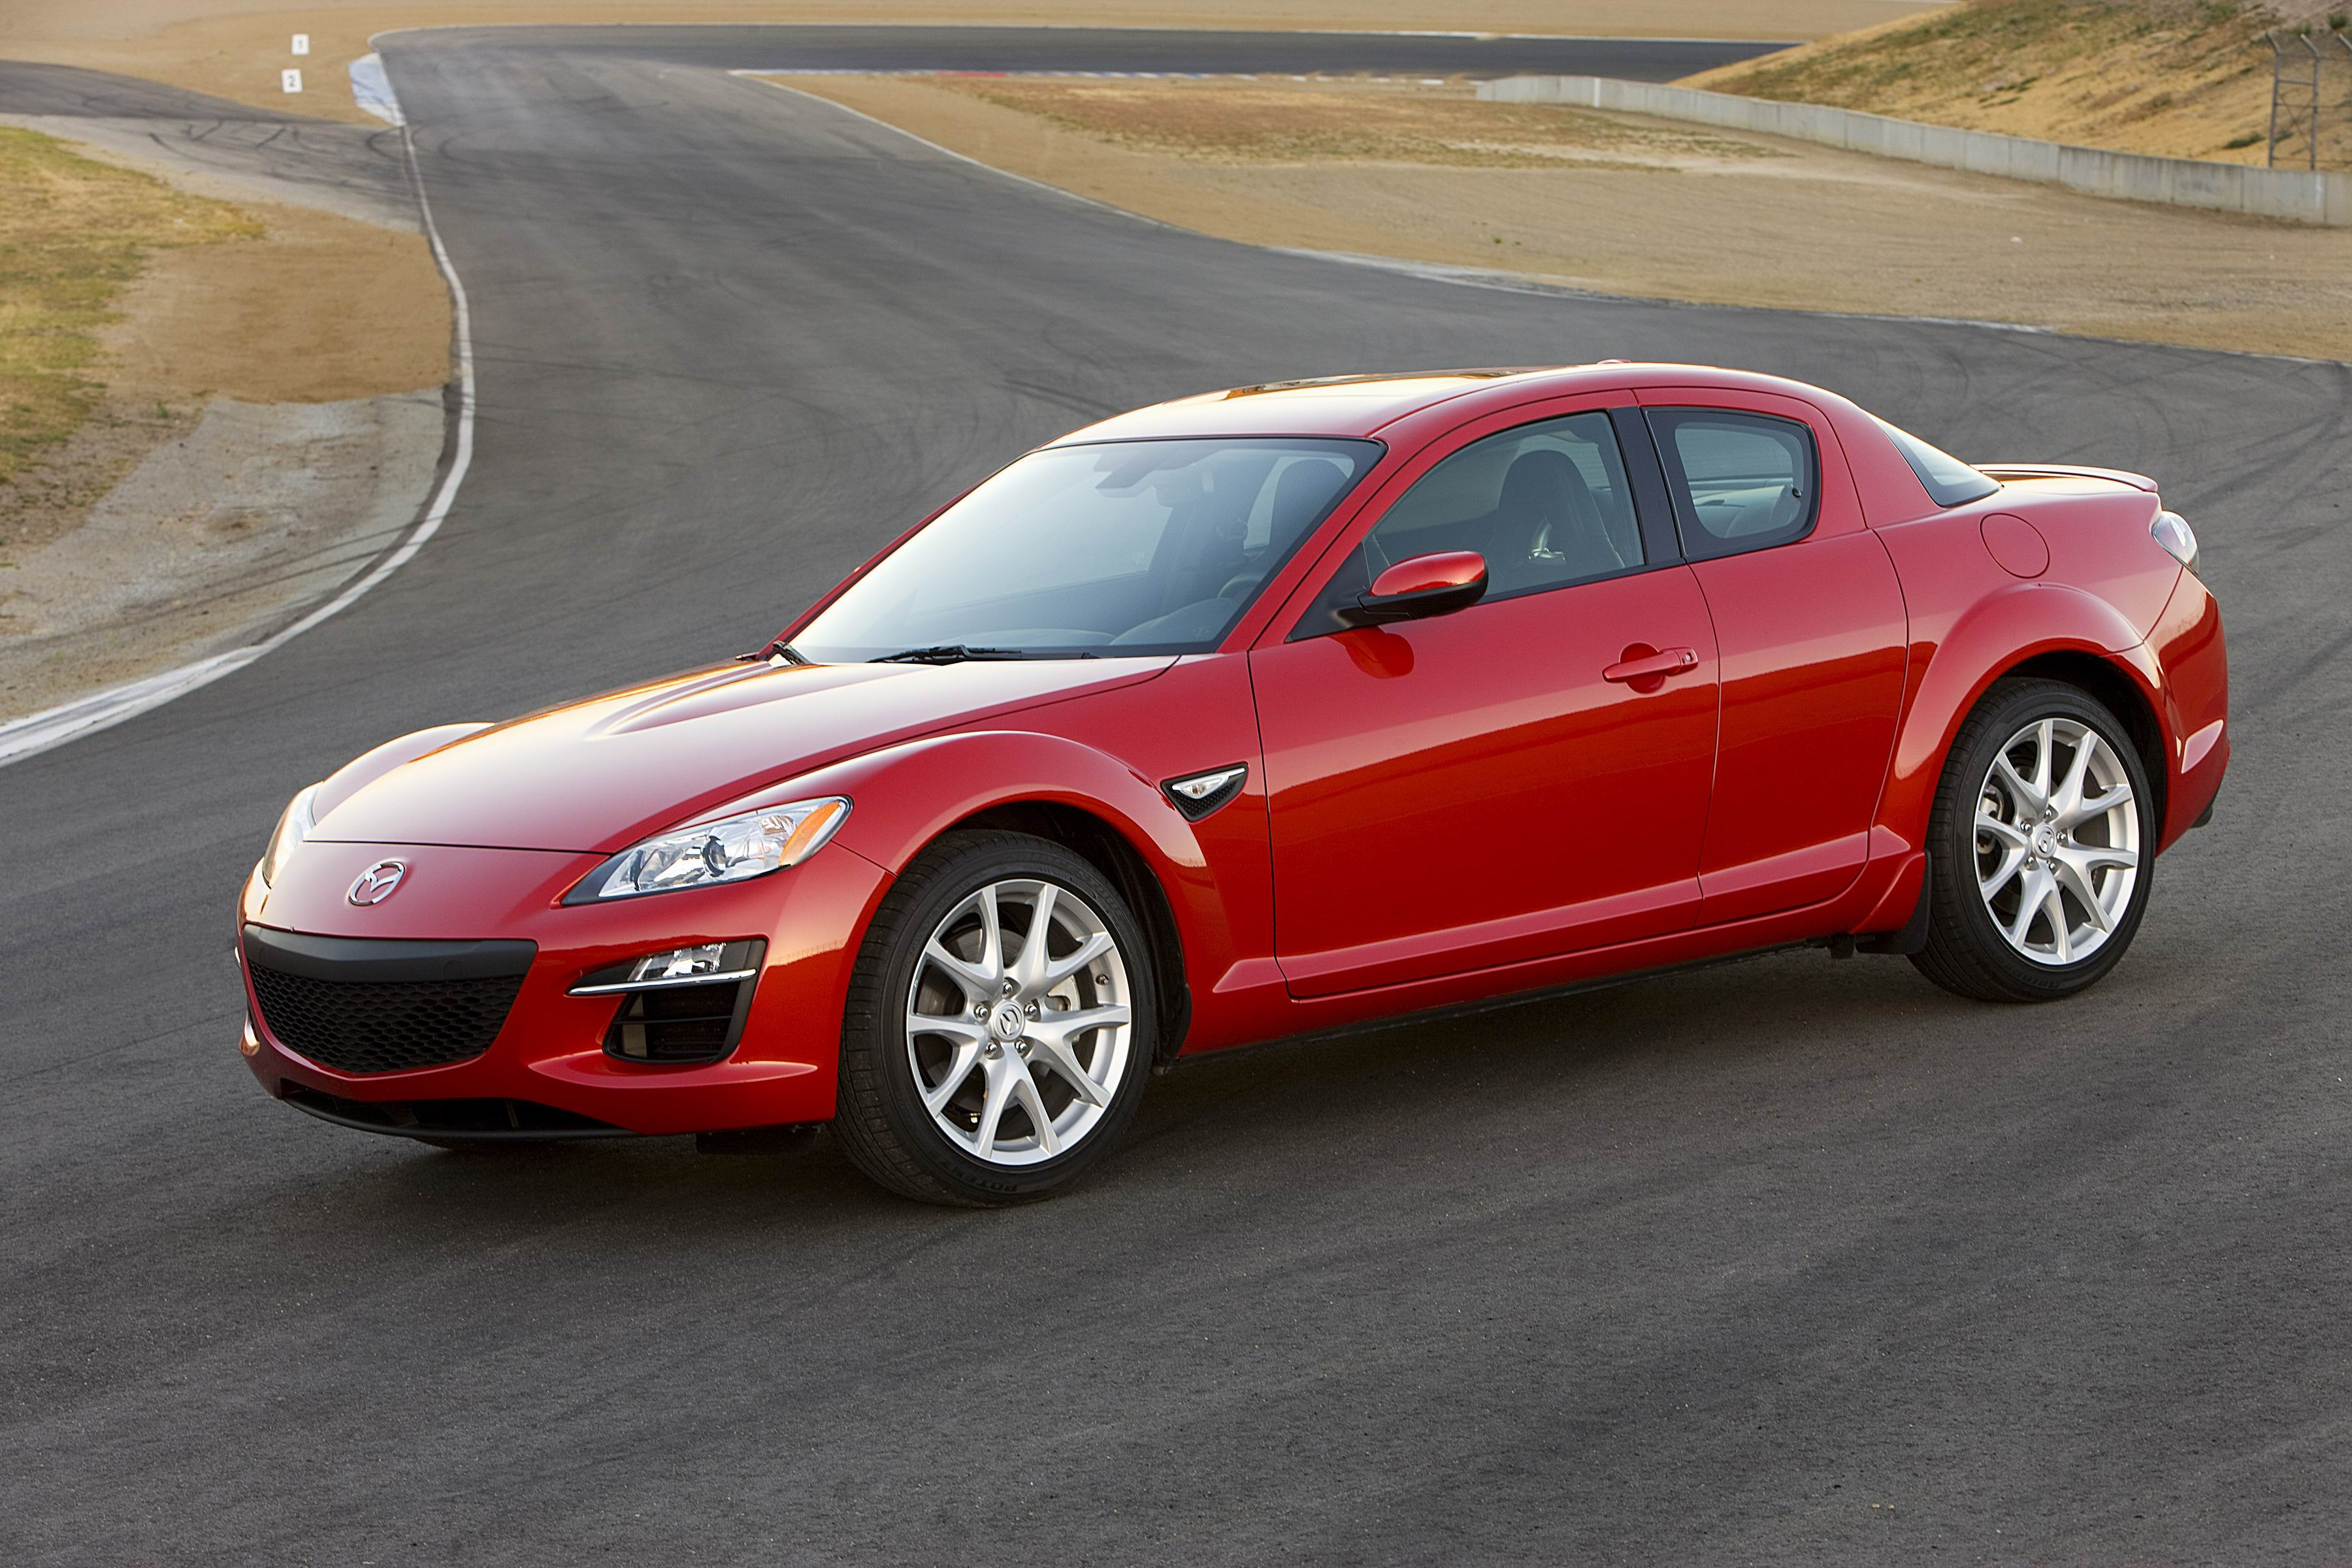 2011 mazda rx-8 grand touring - editors' notebook - automobile